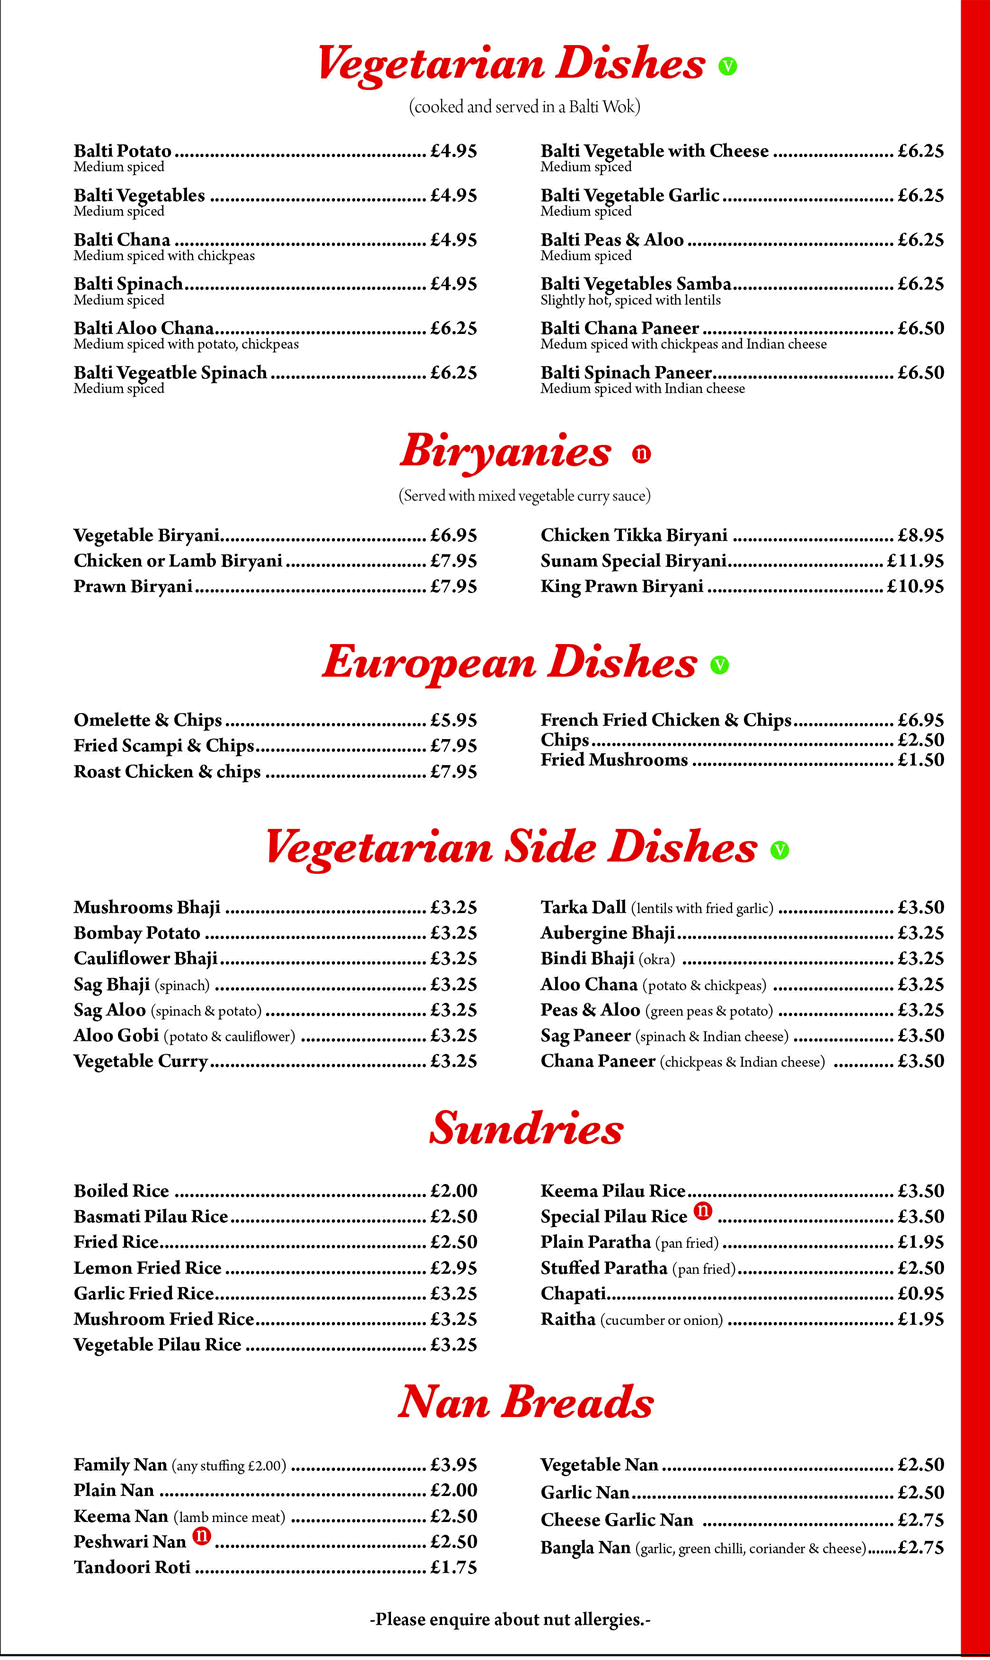 Vegetarian and European Dishes